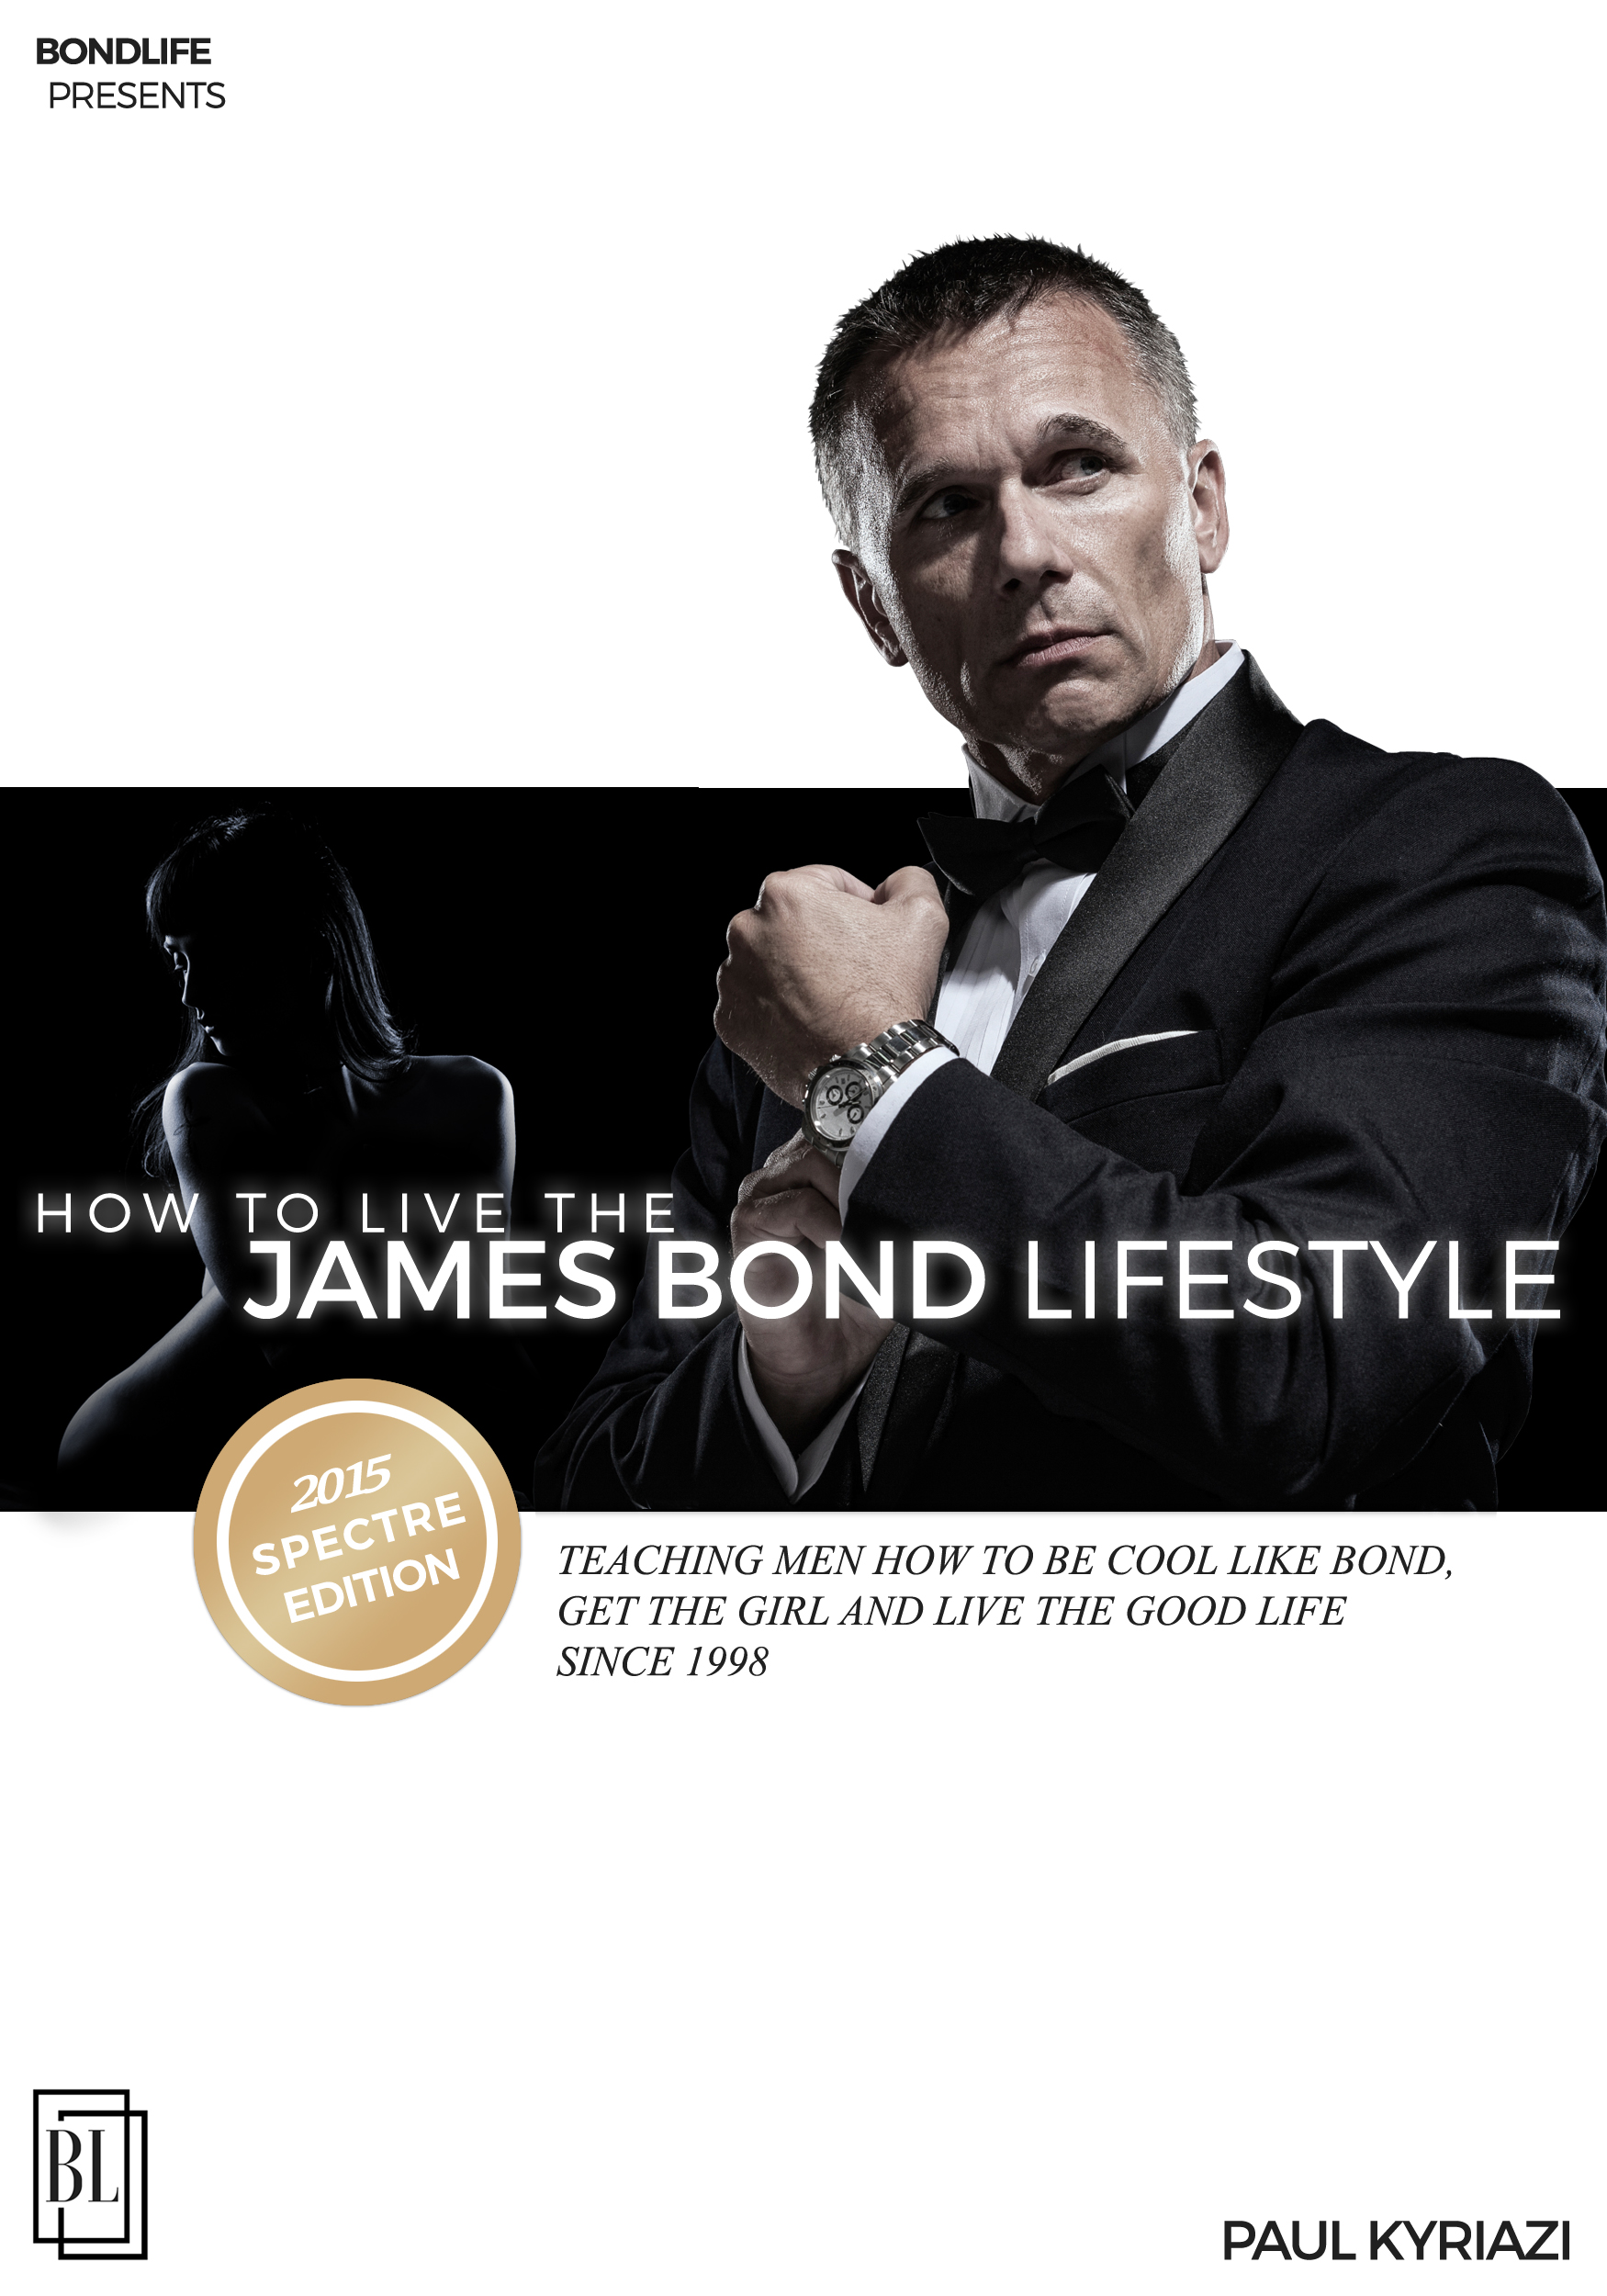 How to Live the James Bond Lifestyle 8 CD set!